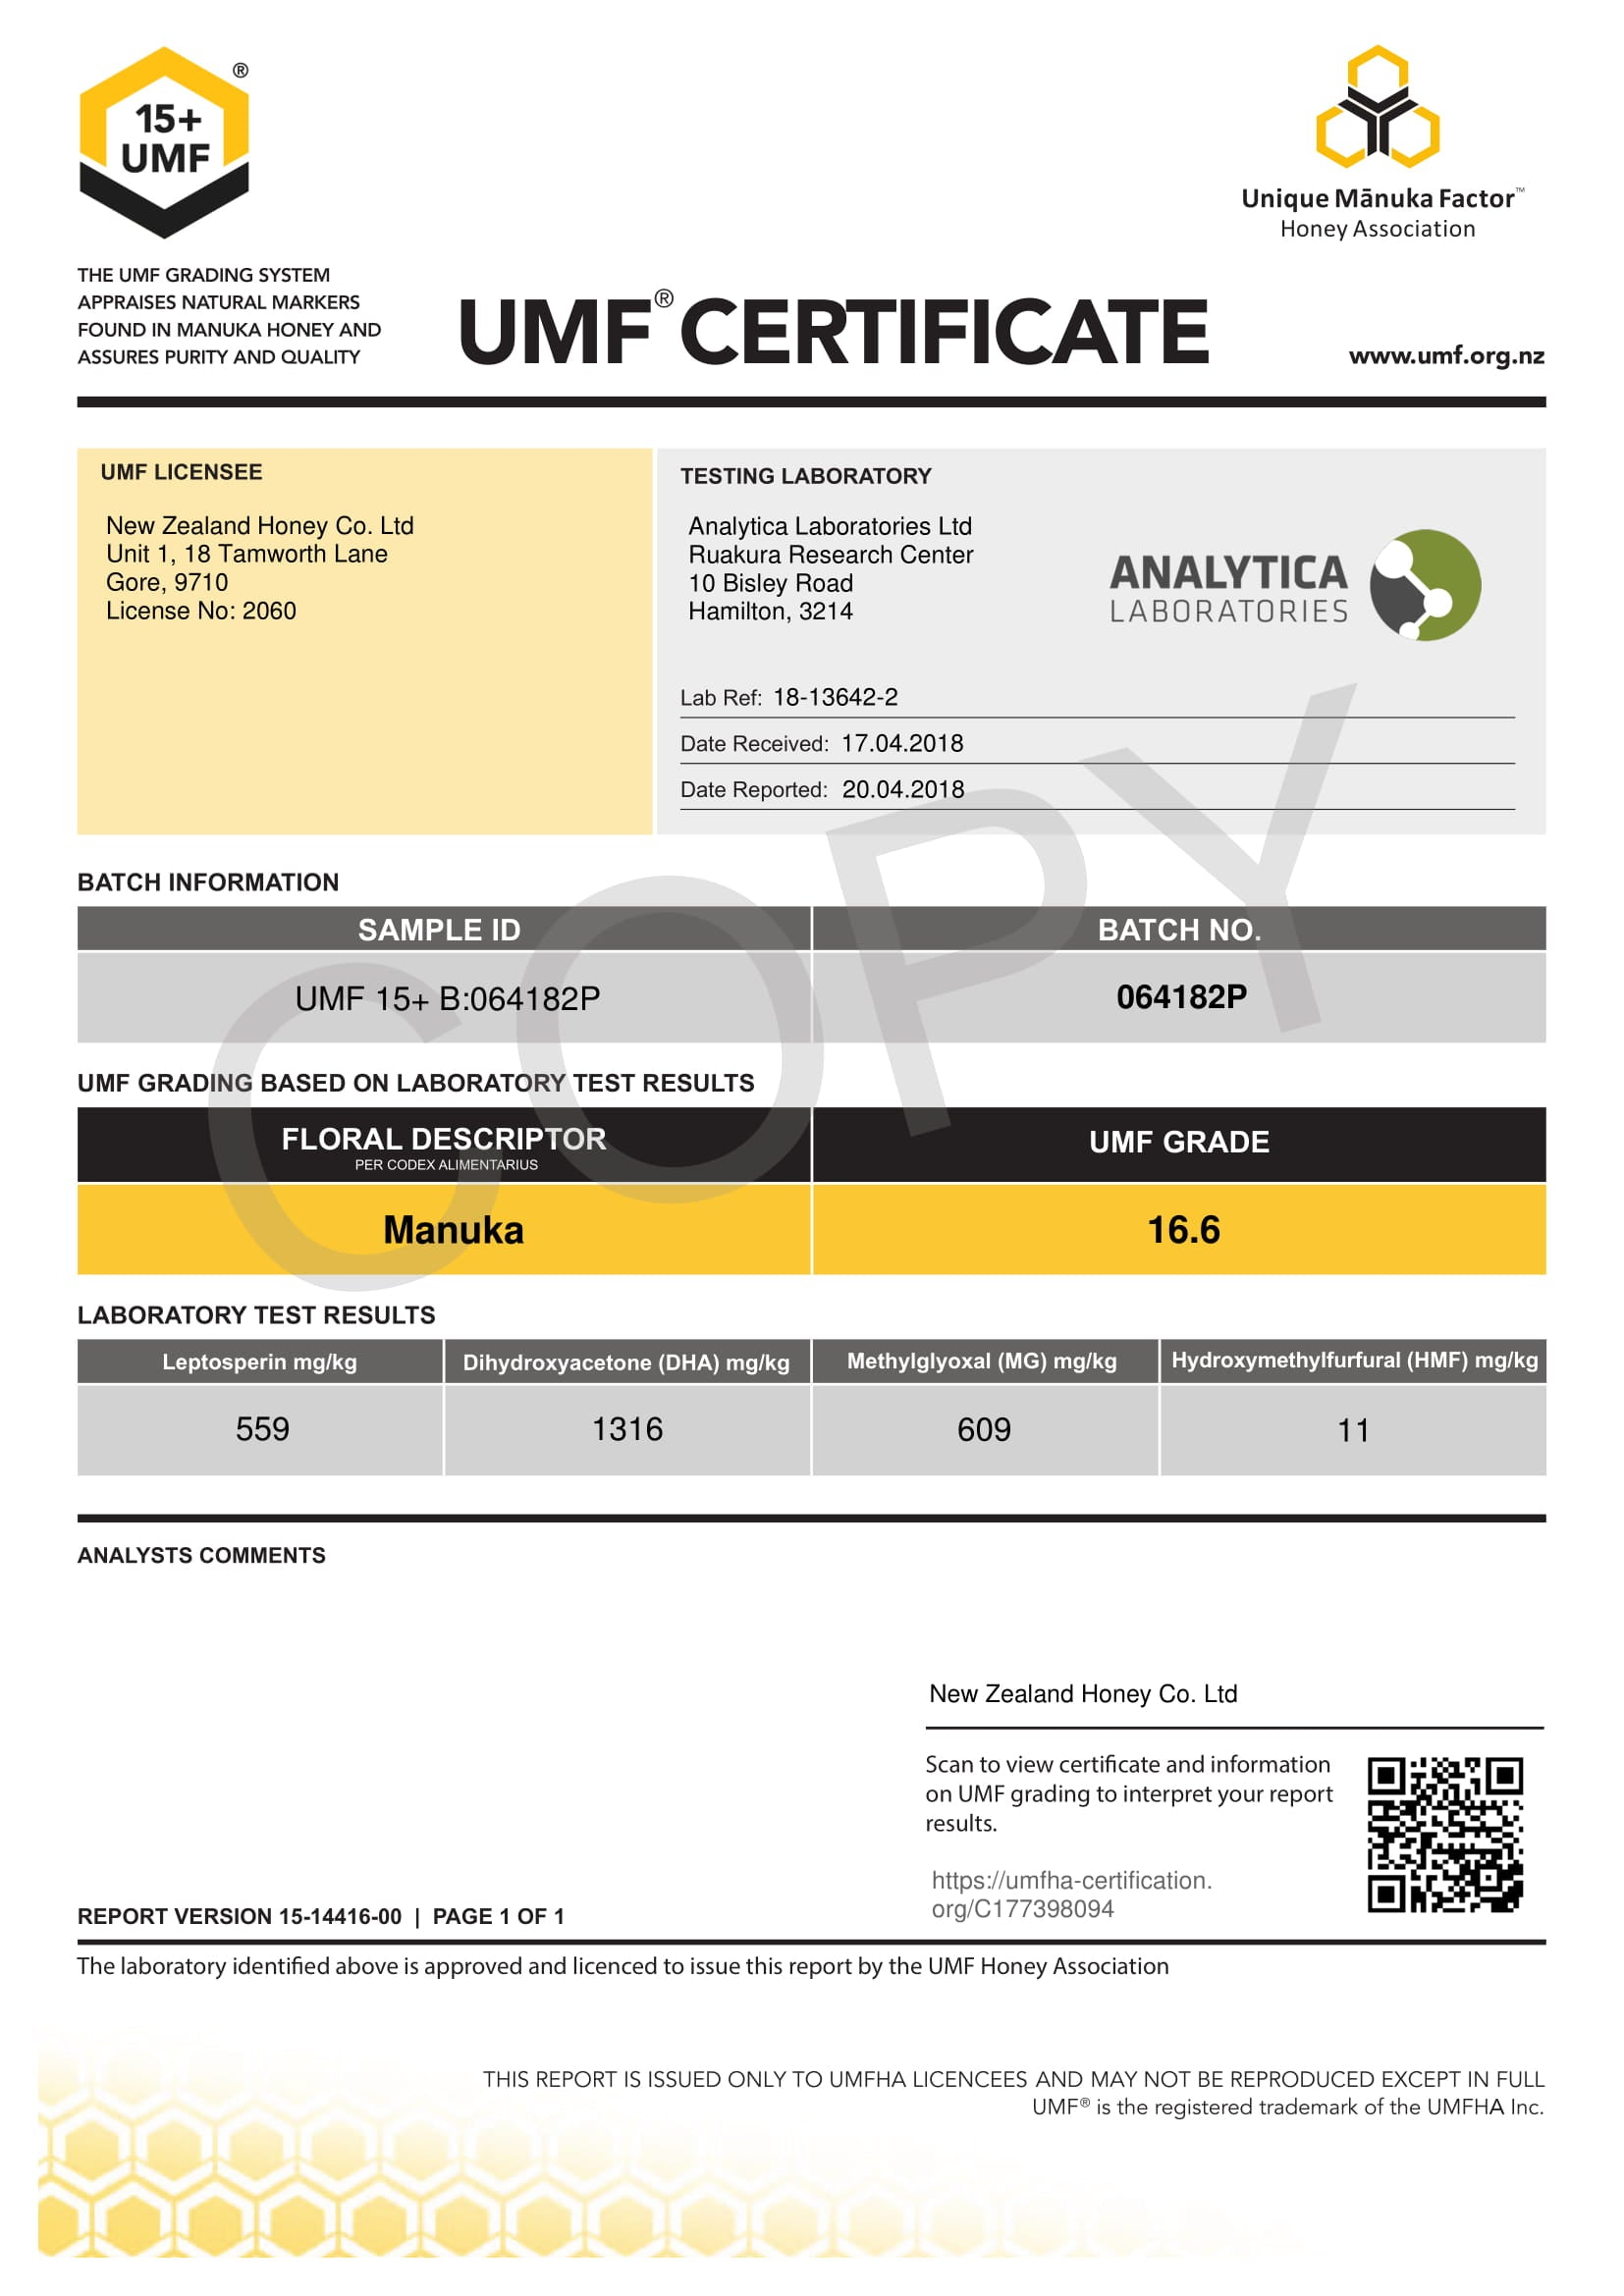 Manuka Honey UMF Certificate for LOT 064182P from New Zealand Honey Co.